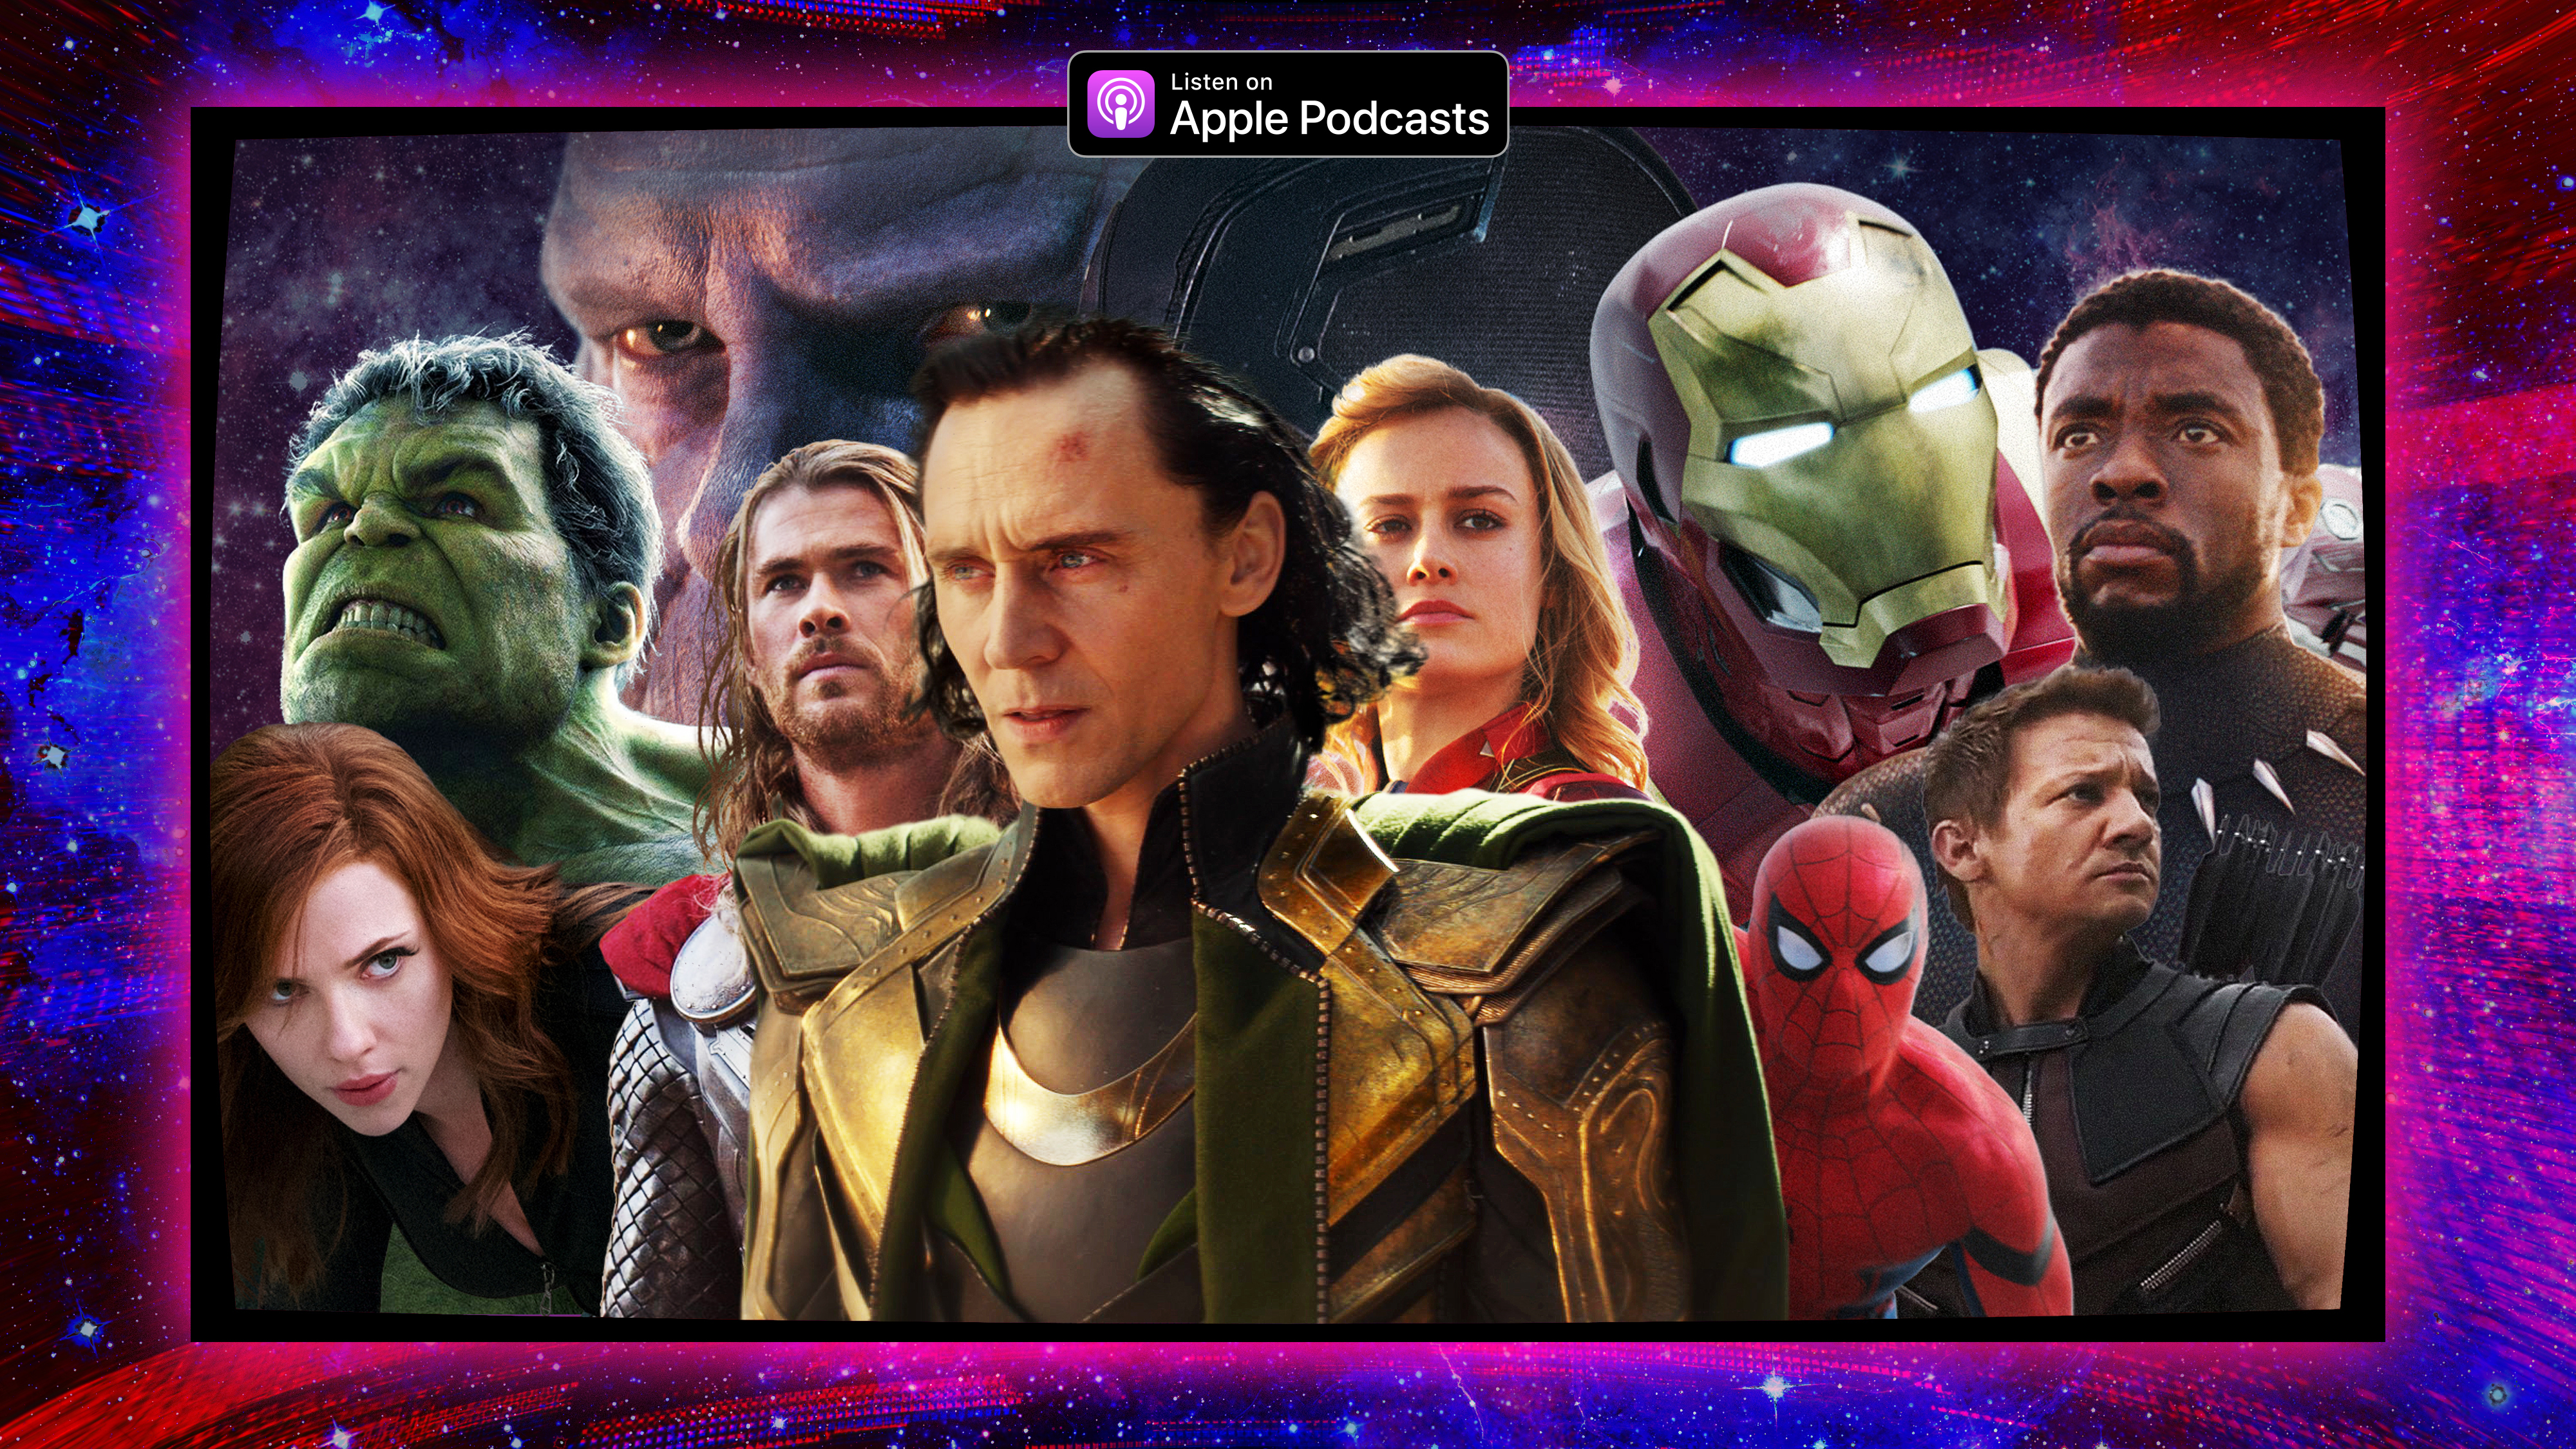 Illustration featuring the Avengers characters with Loki in the center